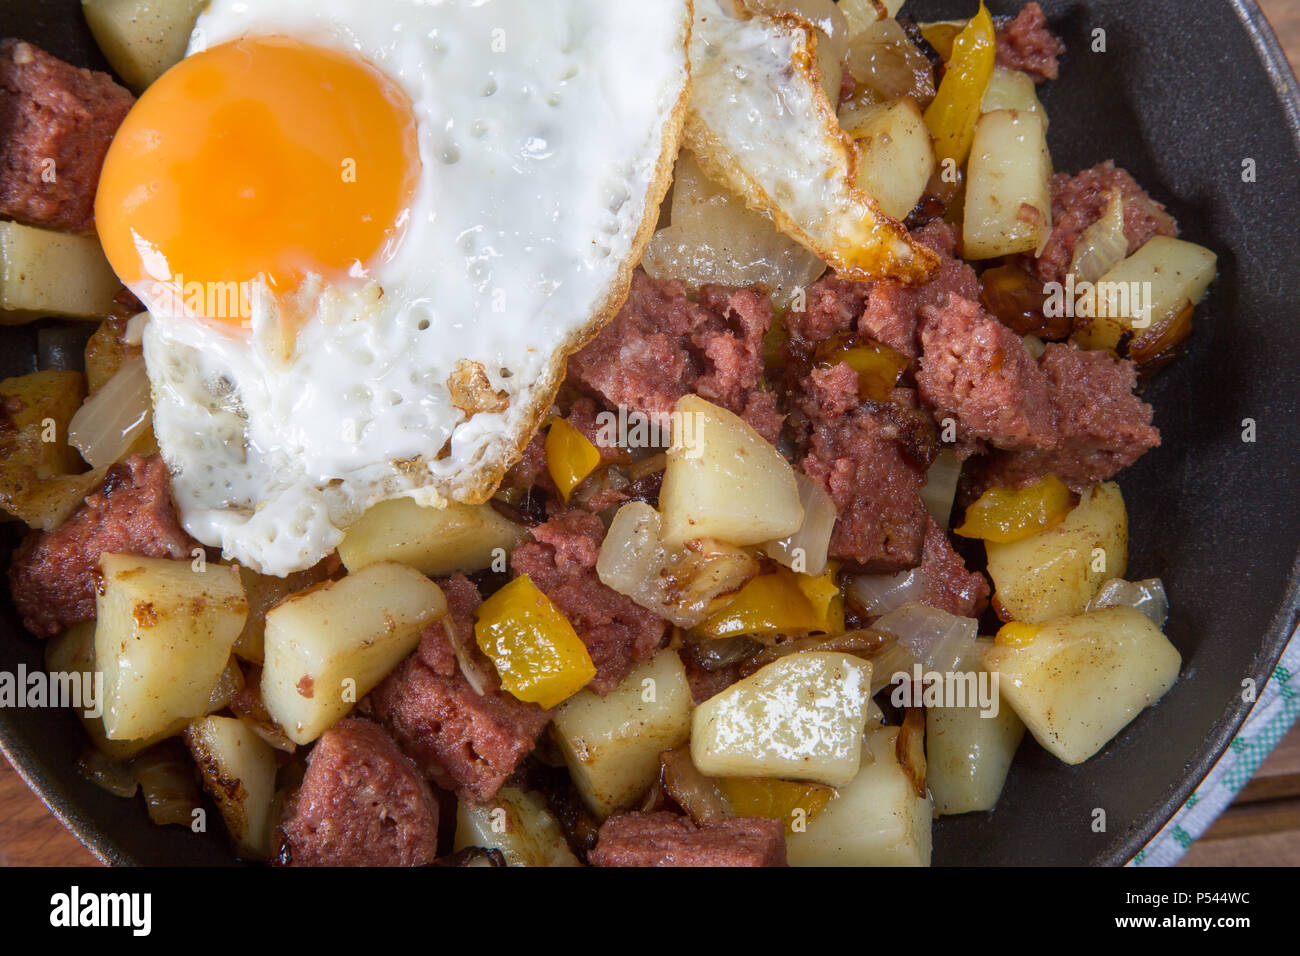 Freshly cooked Corned beef hash with a fried egg served in the pan. - Stock Image